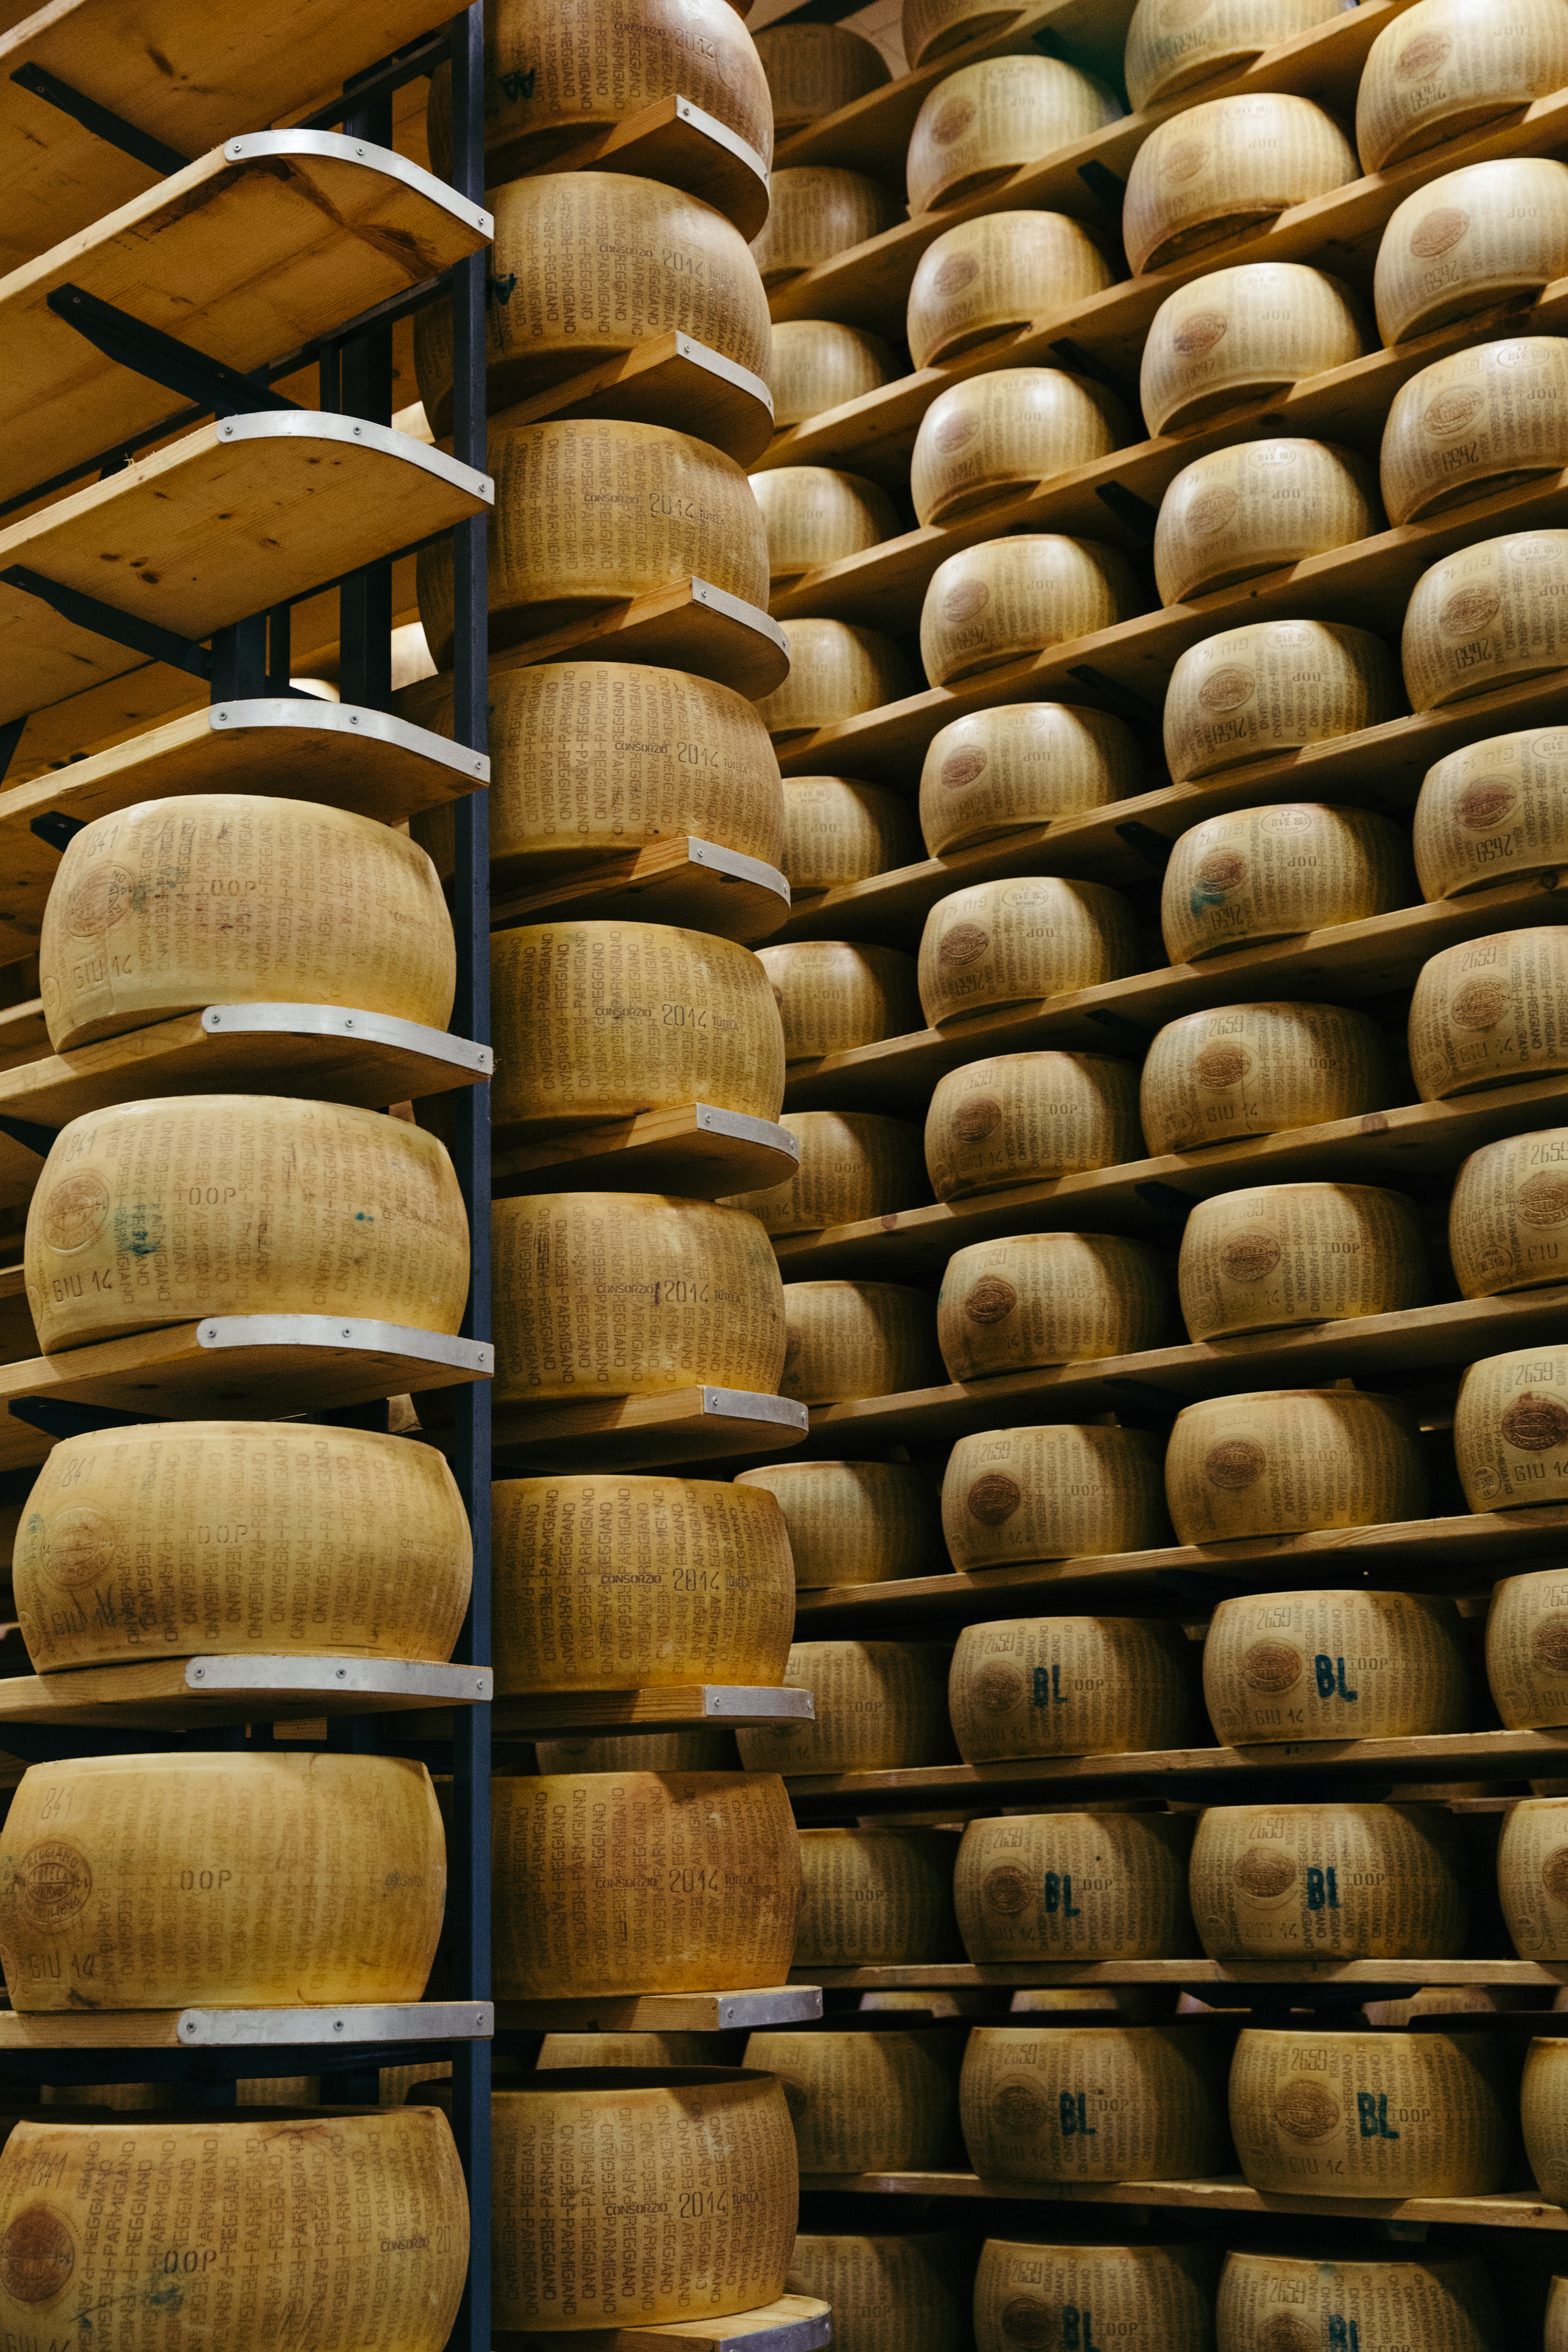 Not a Commodity - The consorzio that unites Parmigiano Reggiano makers and protects their cheese's recipe has, by almost any measure, done an amazing job. They have created the single most admired—and eaten—cheese in the world. In doing so, however, they have removed the identity of the maker and ager, giving the appearance that it's a commodity.